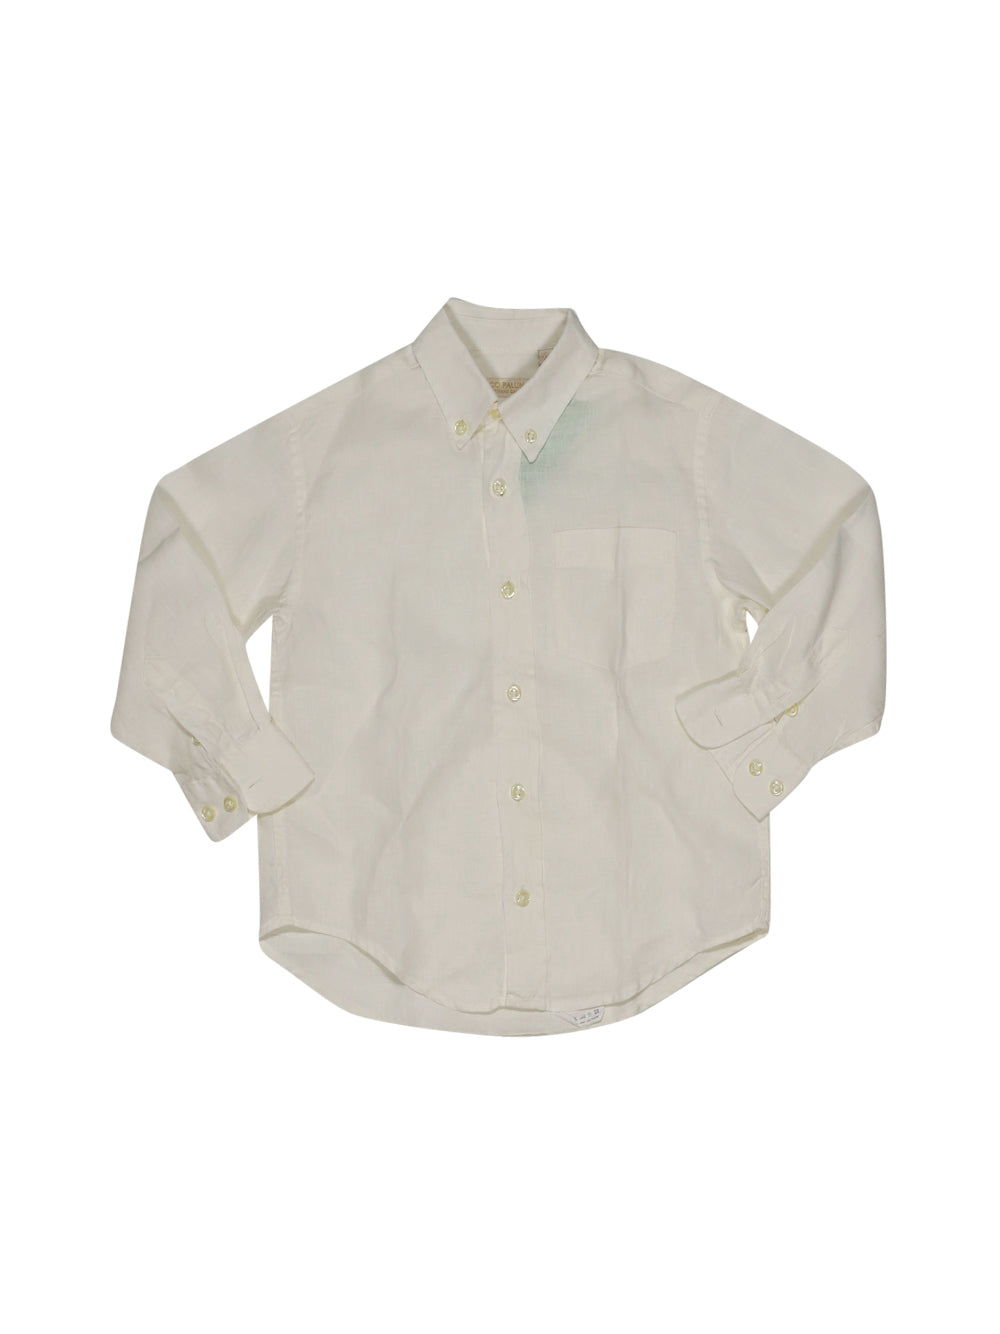 Front photo of Preloved I Pinco Pallino White Boy's shirt - size 4-5 yrs